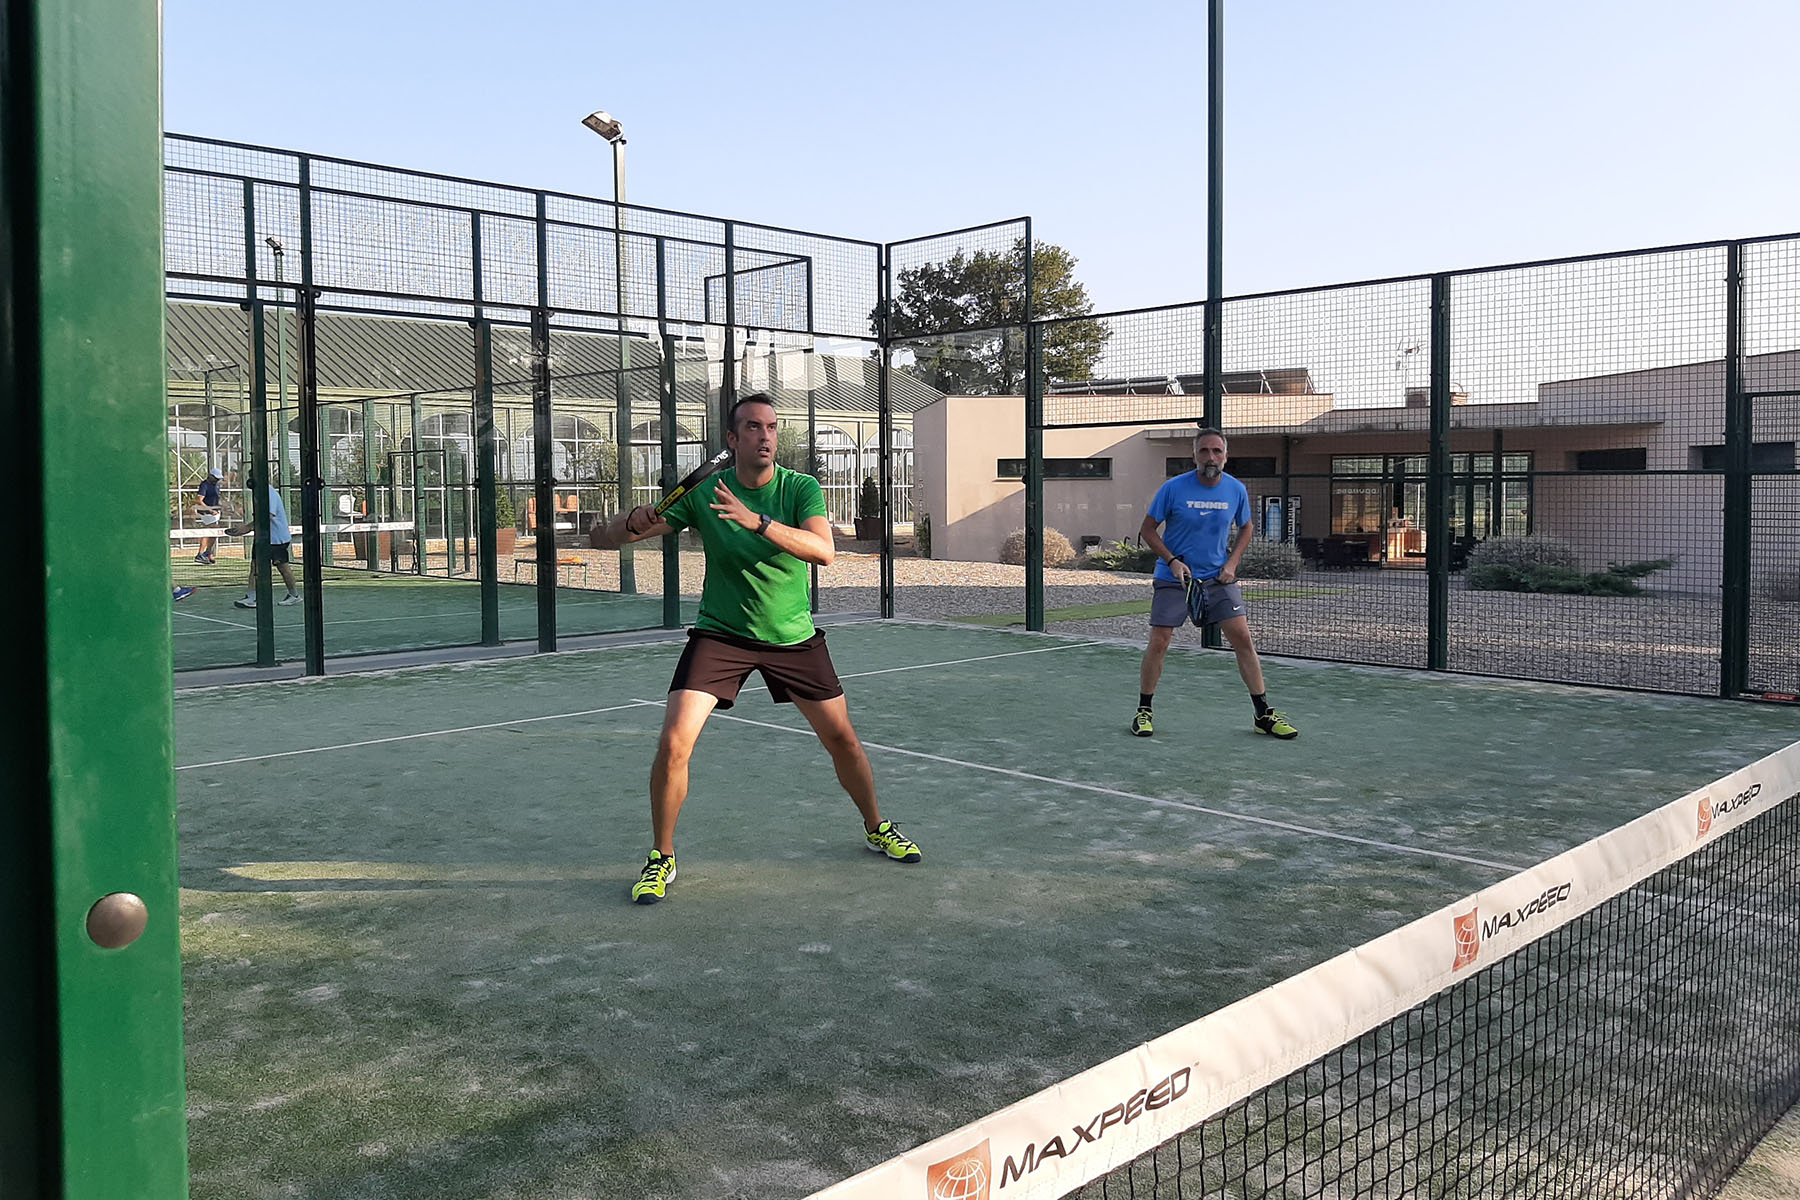 Conversia Check Point Julio 2019 Padel